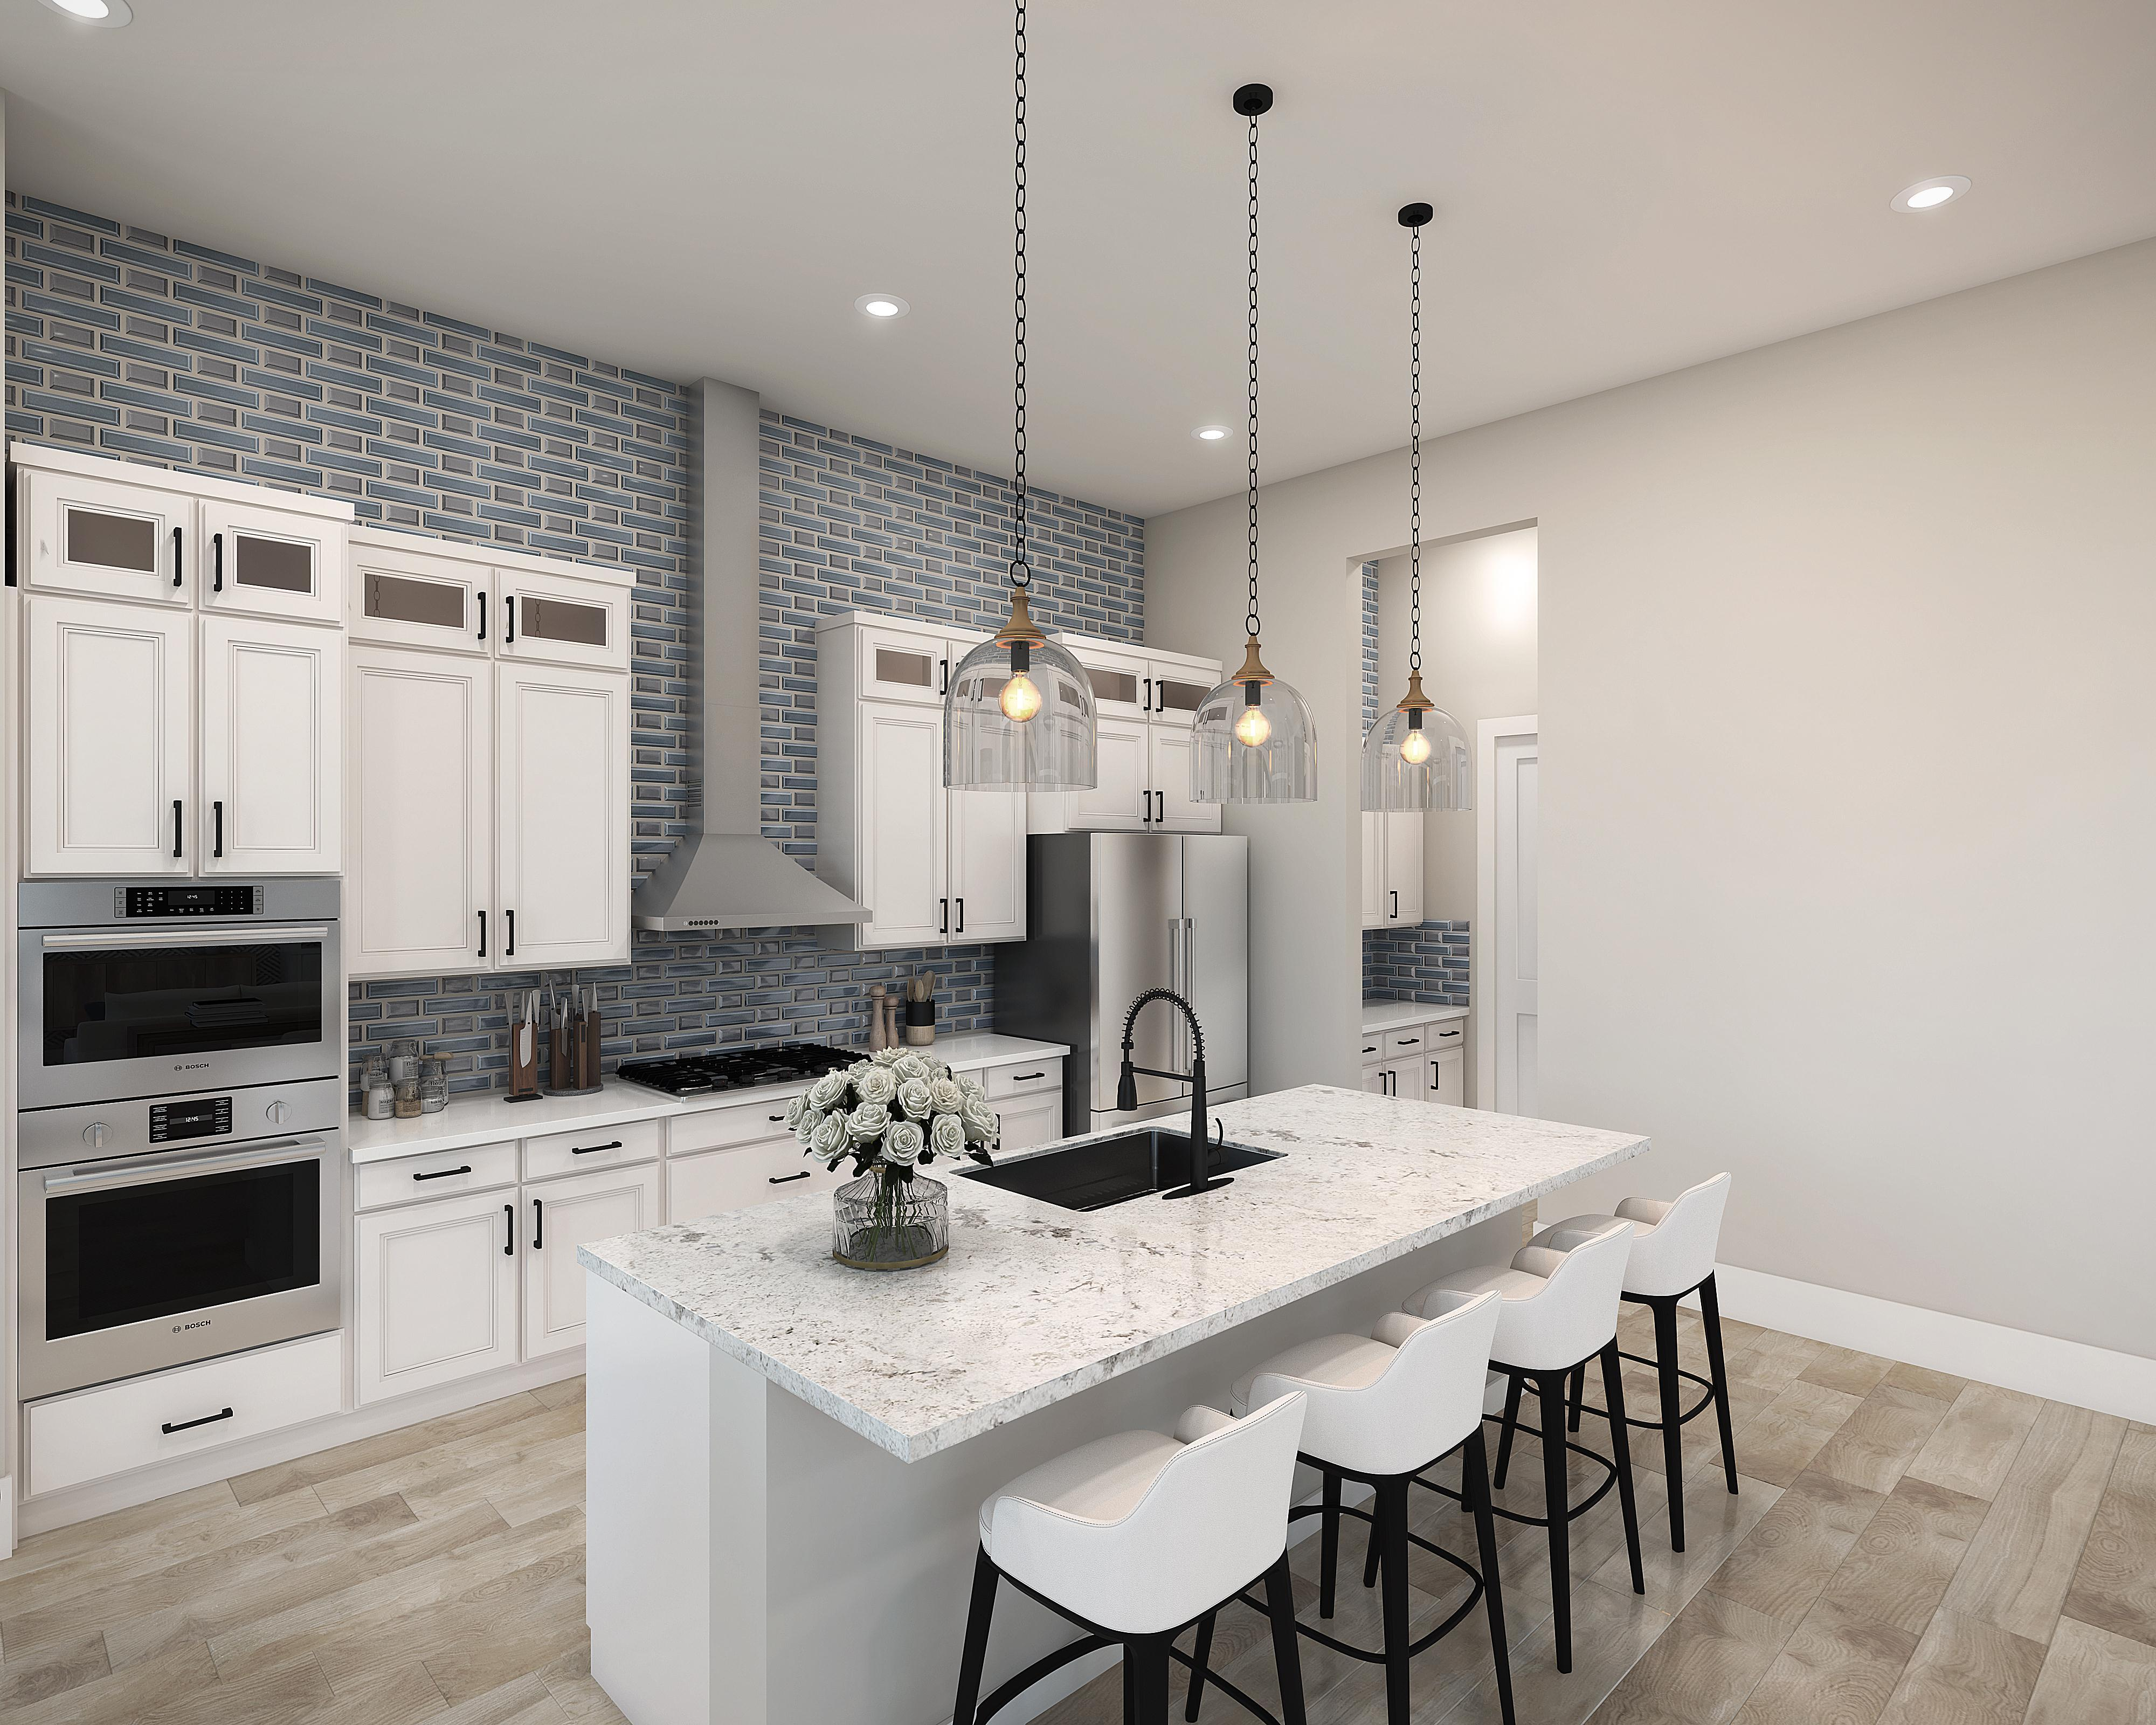 Kitchen featured in the Plan 1-A  By Copper Valley  in Stockton-Lodi, CA